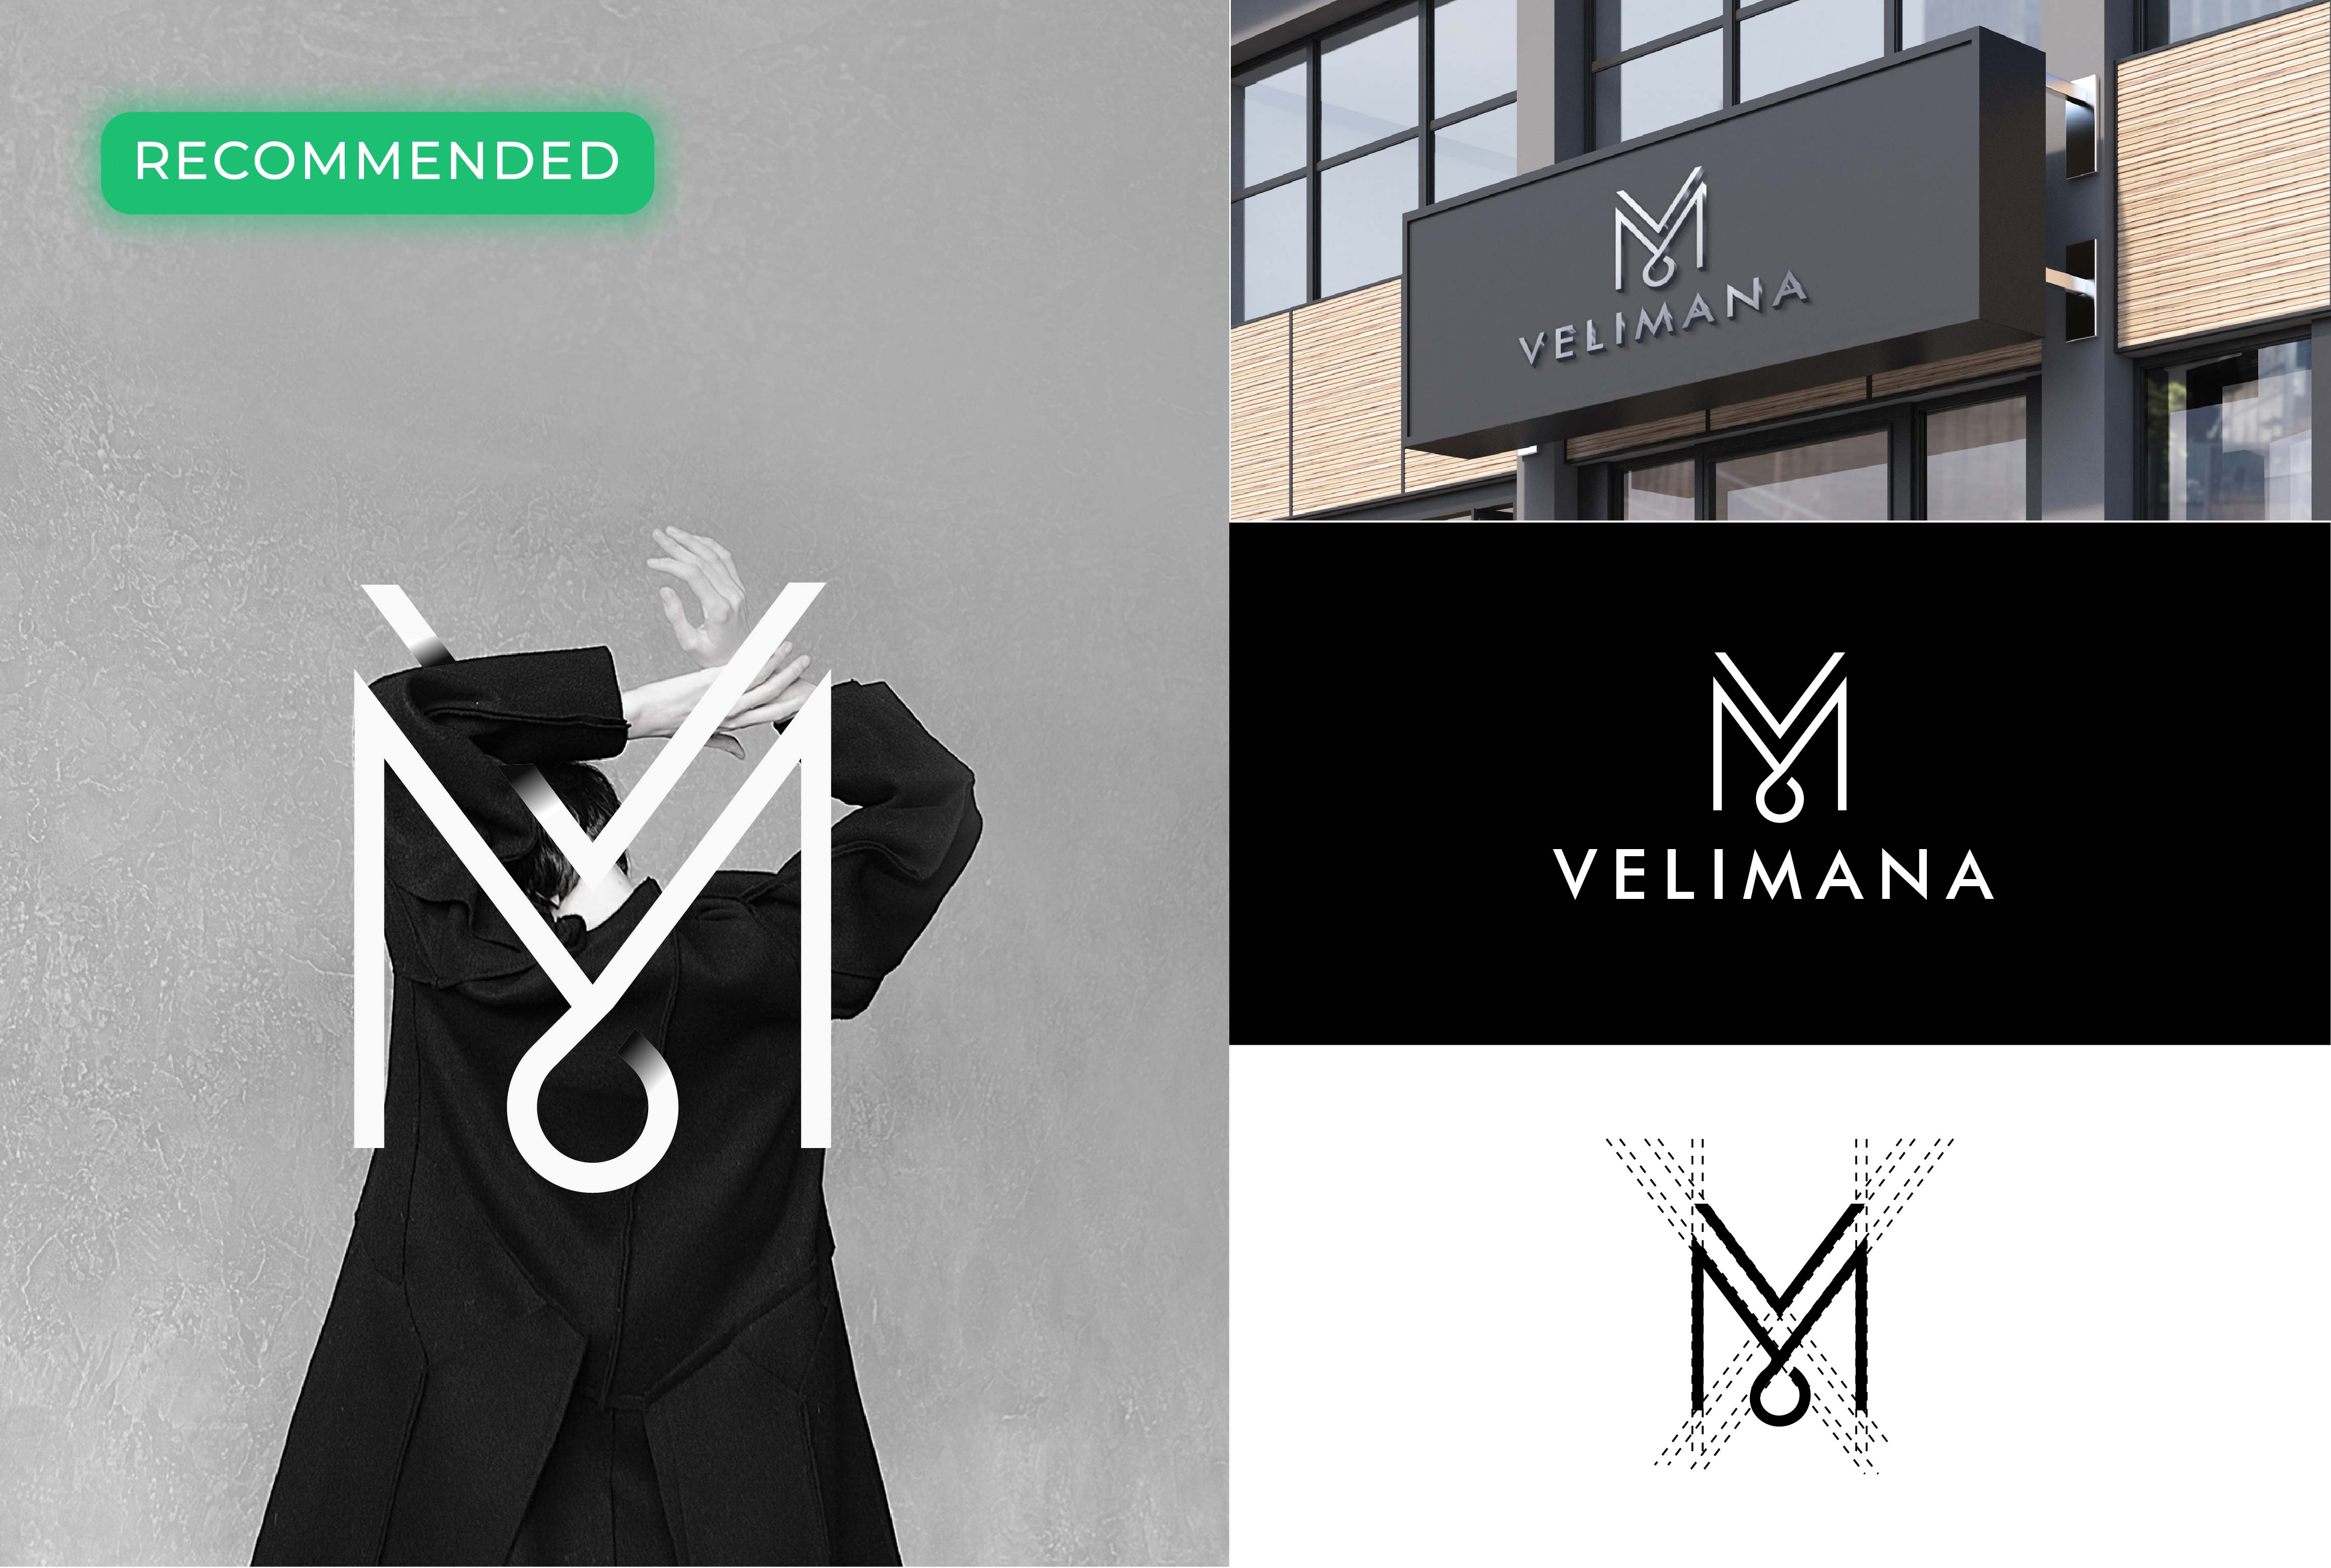 Design Monogram Initial Fashion Clothing Logo For Less Money By Haidaralwi